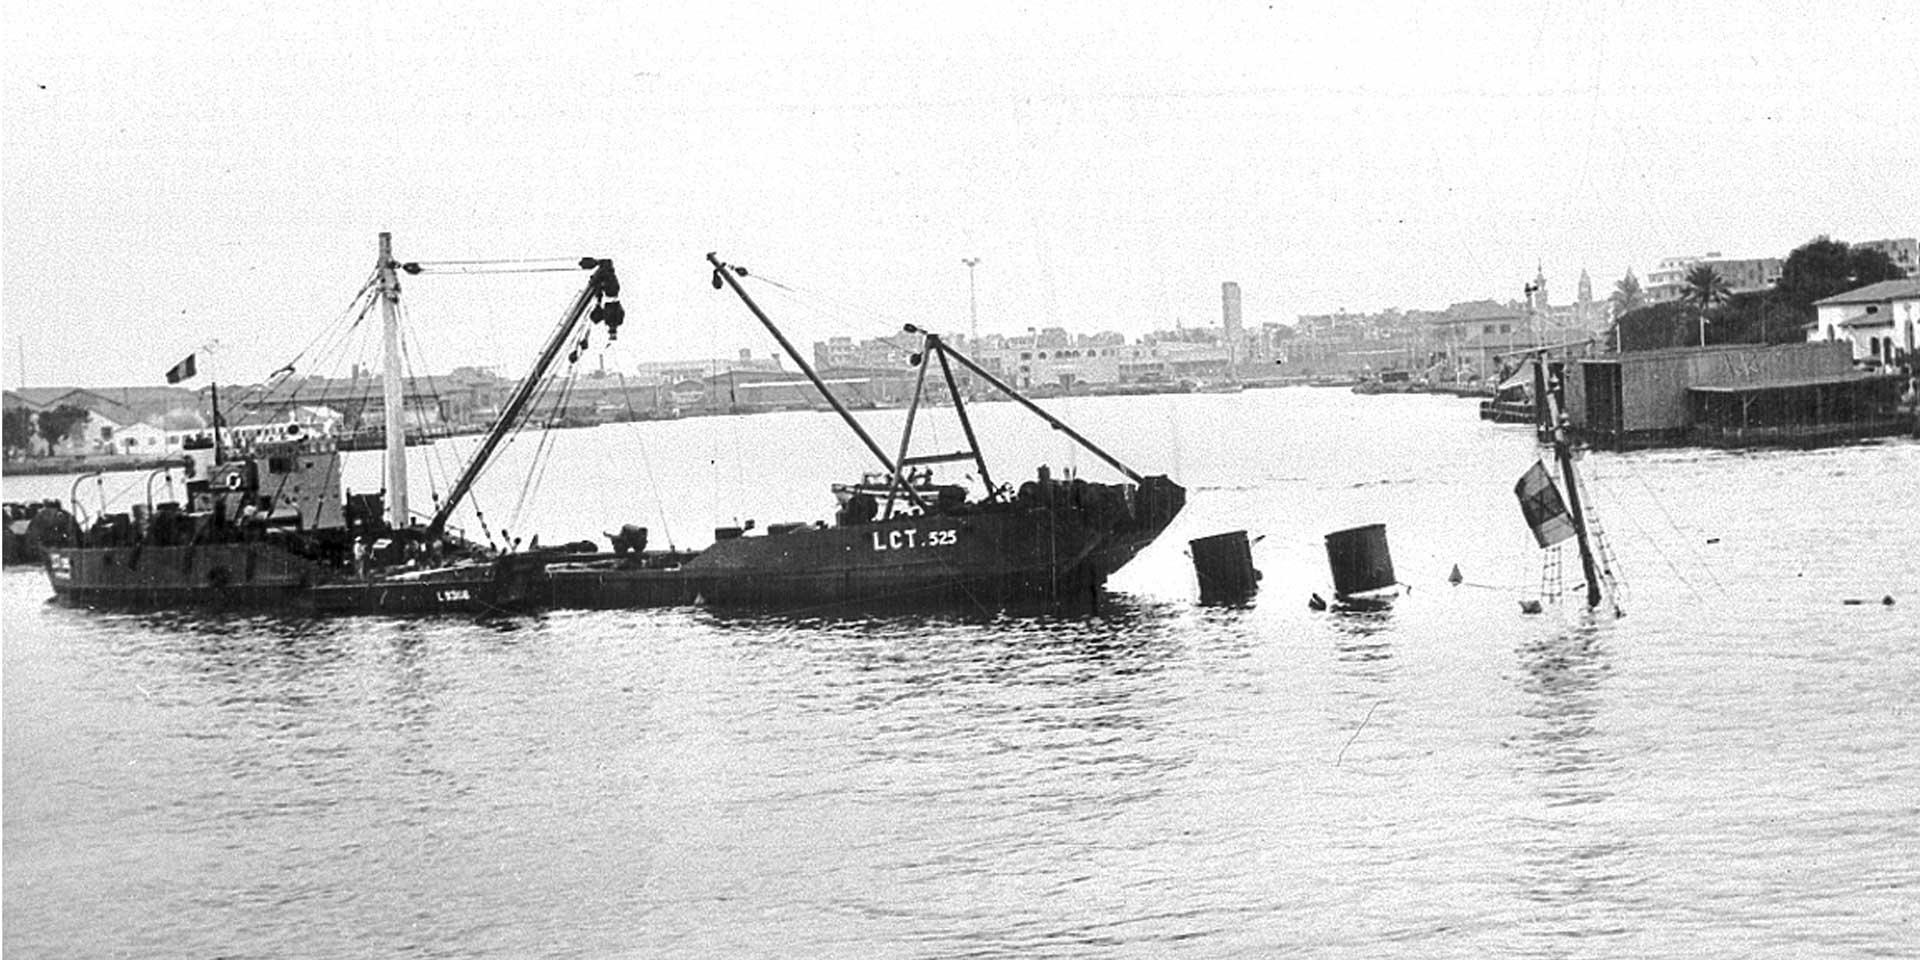 Royal Engineers on a LCT checking sunken shipping blocking the canal, 1956